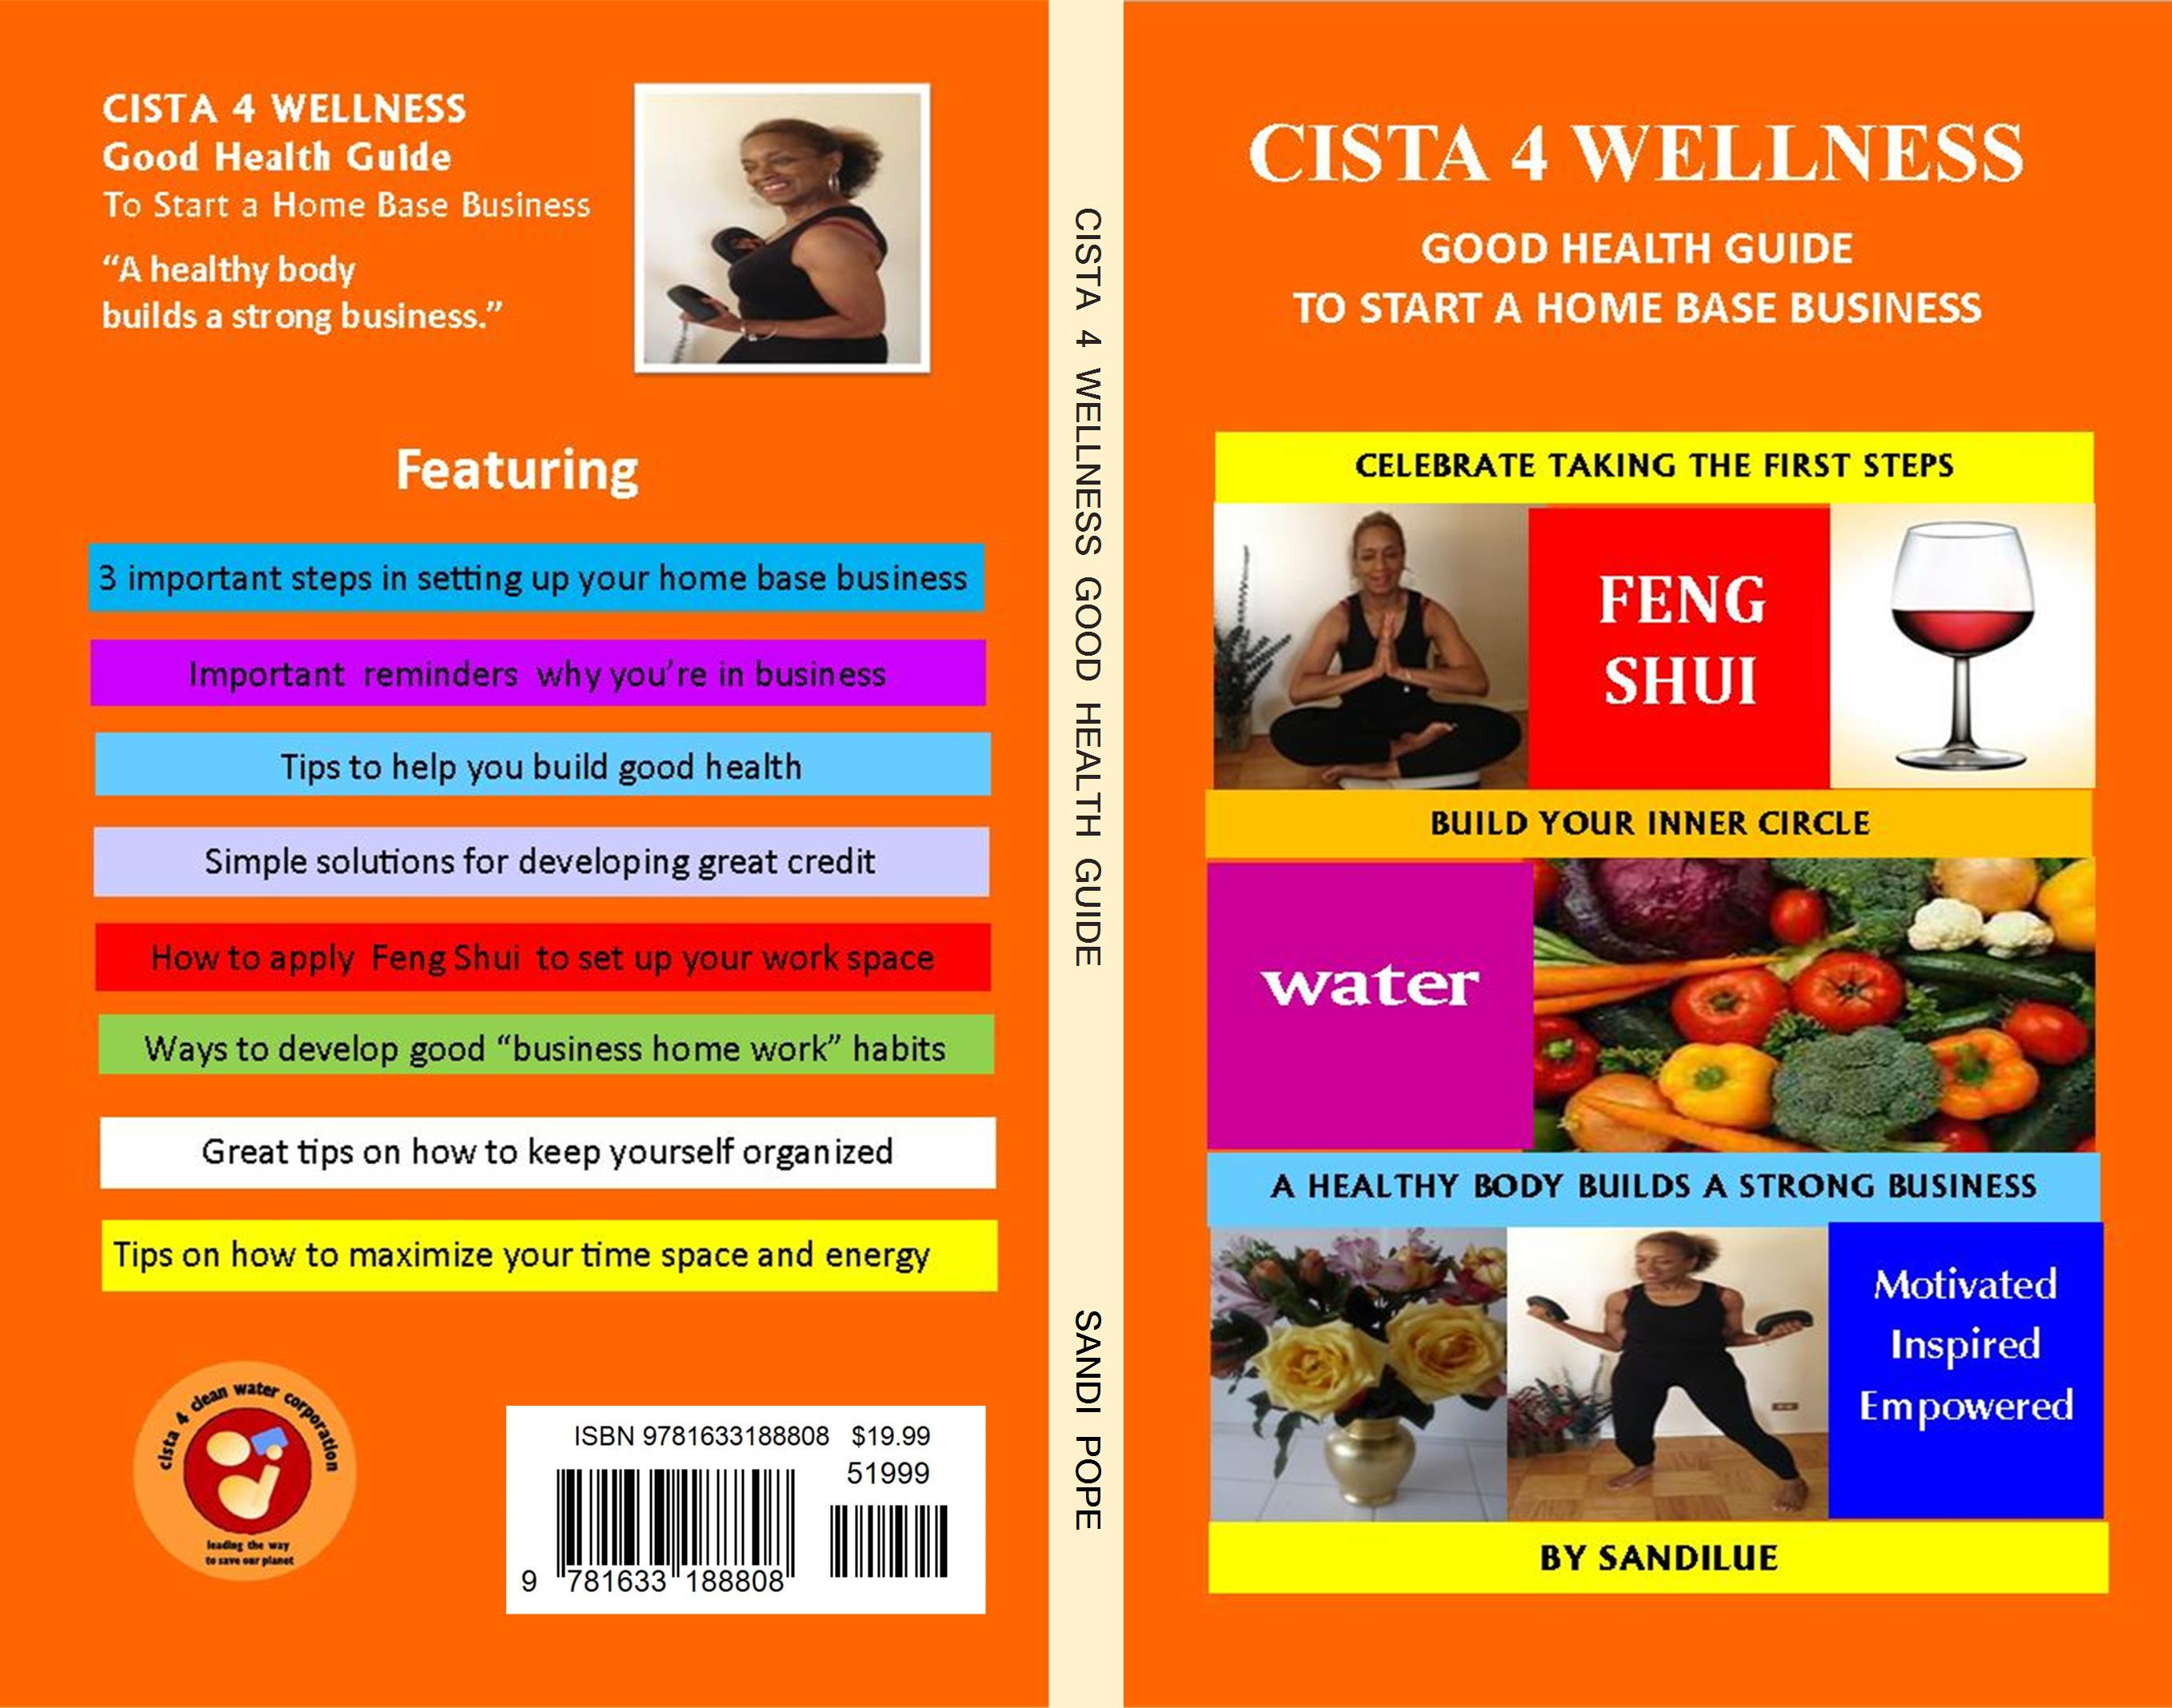 CISTA 4 WELLNESS Good Health Guide to Start a Home Base Business cover image